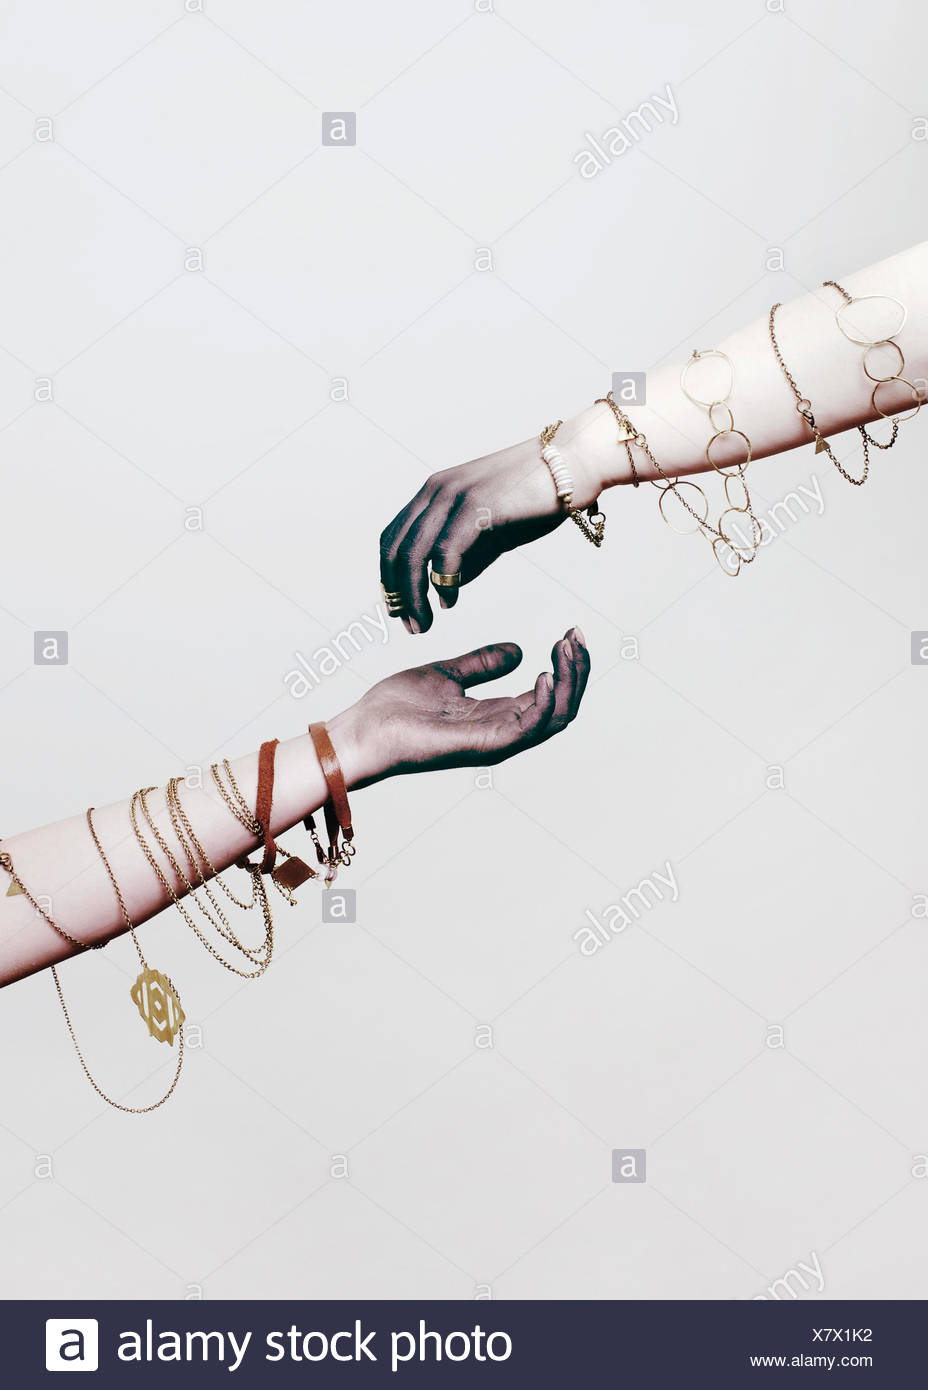 Two arms with jewelry wrapped around them - Stock Image